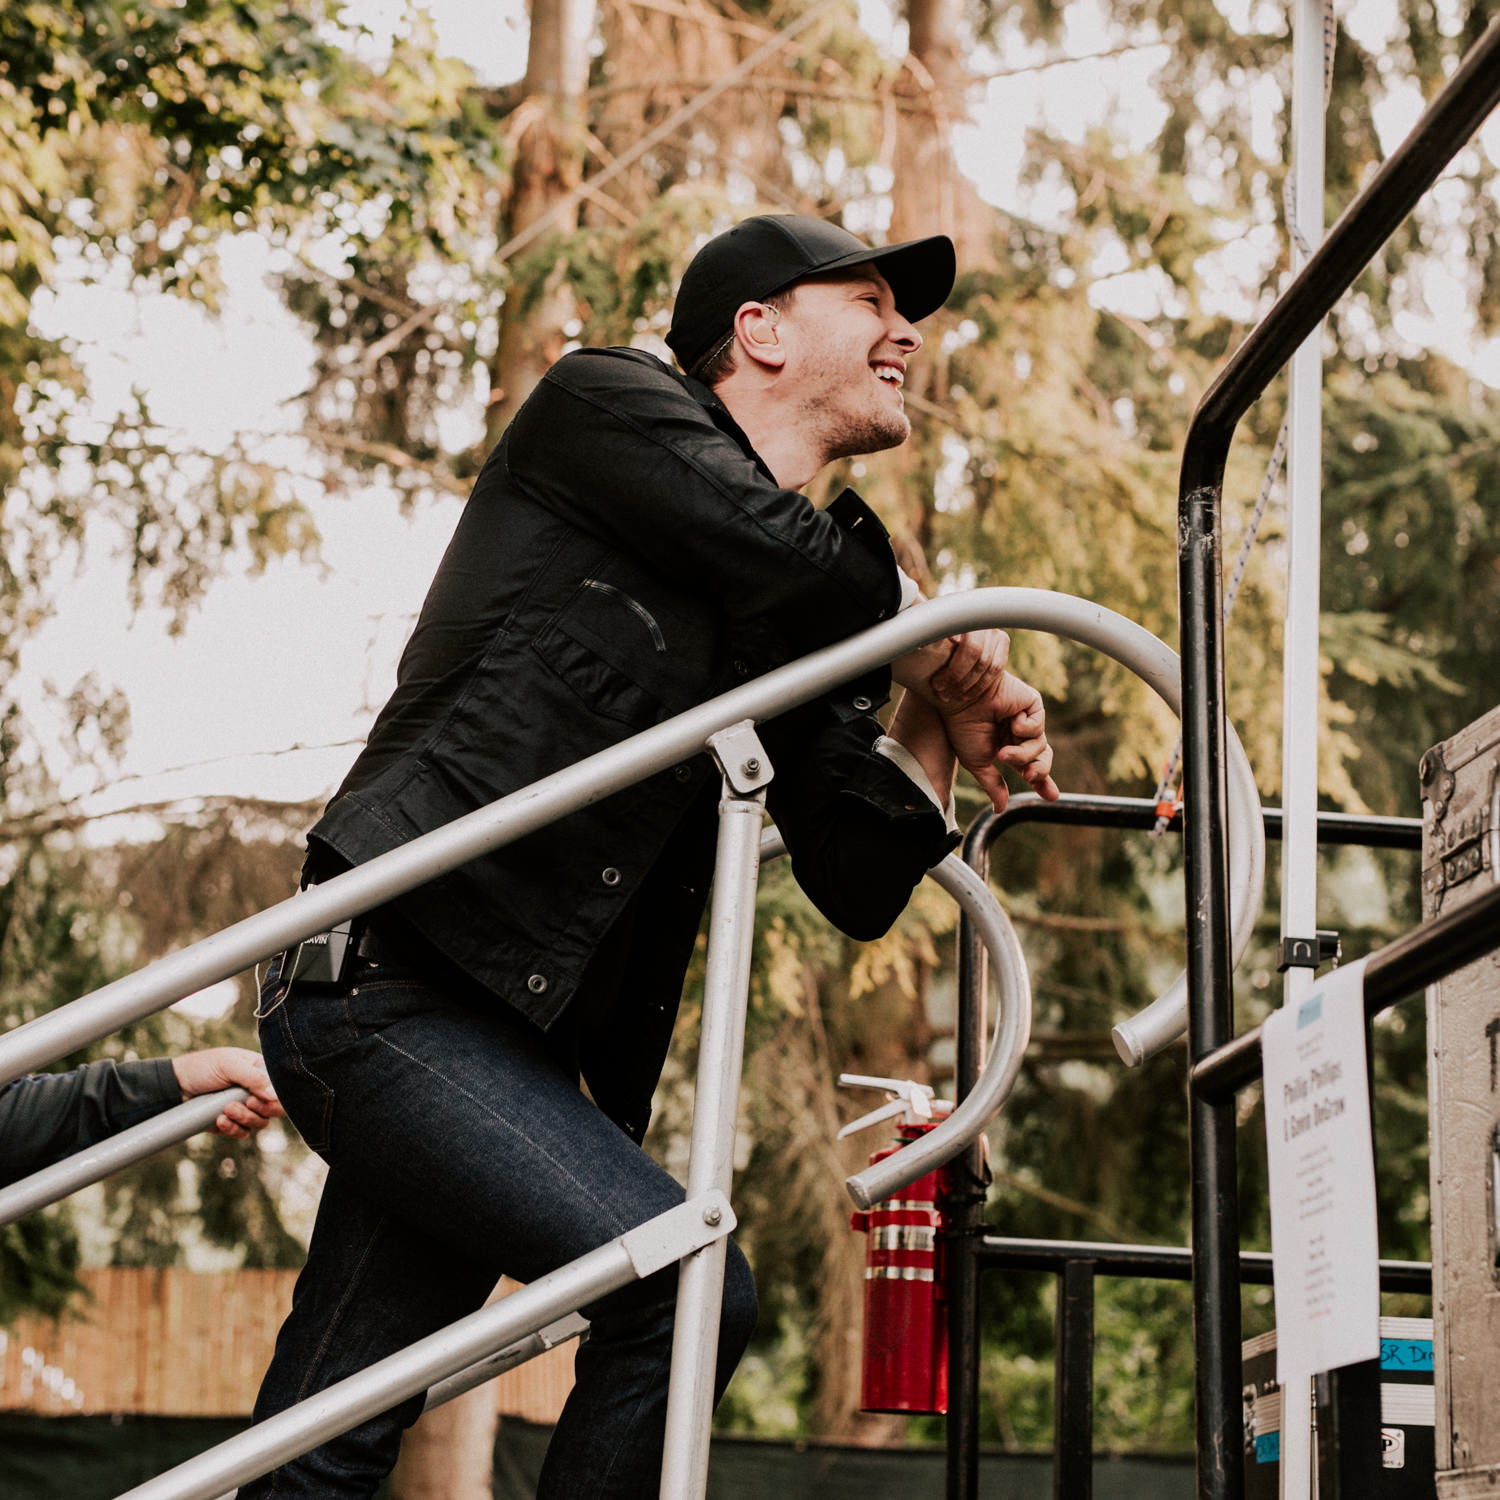 gavin-degraw-side-stage-tour-festival-laughing-AnnaLeeMedia